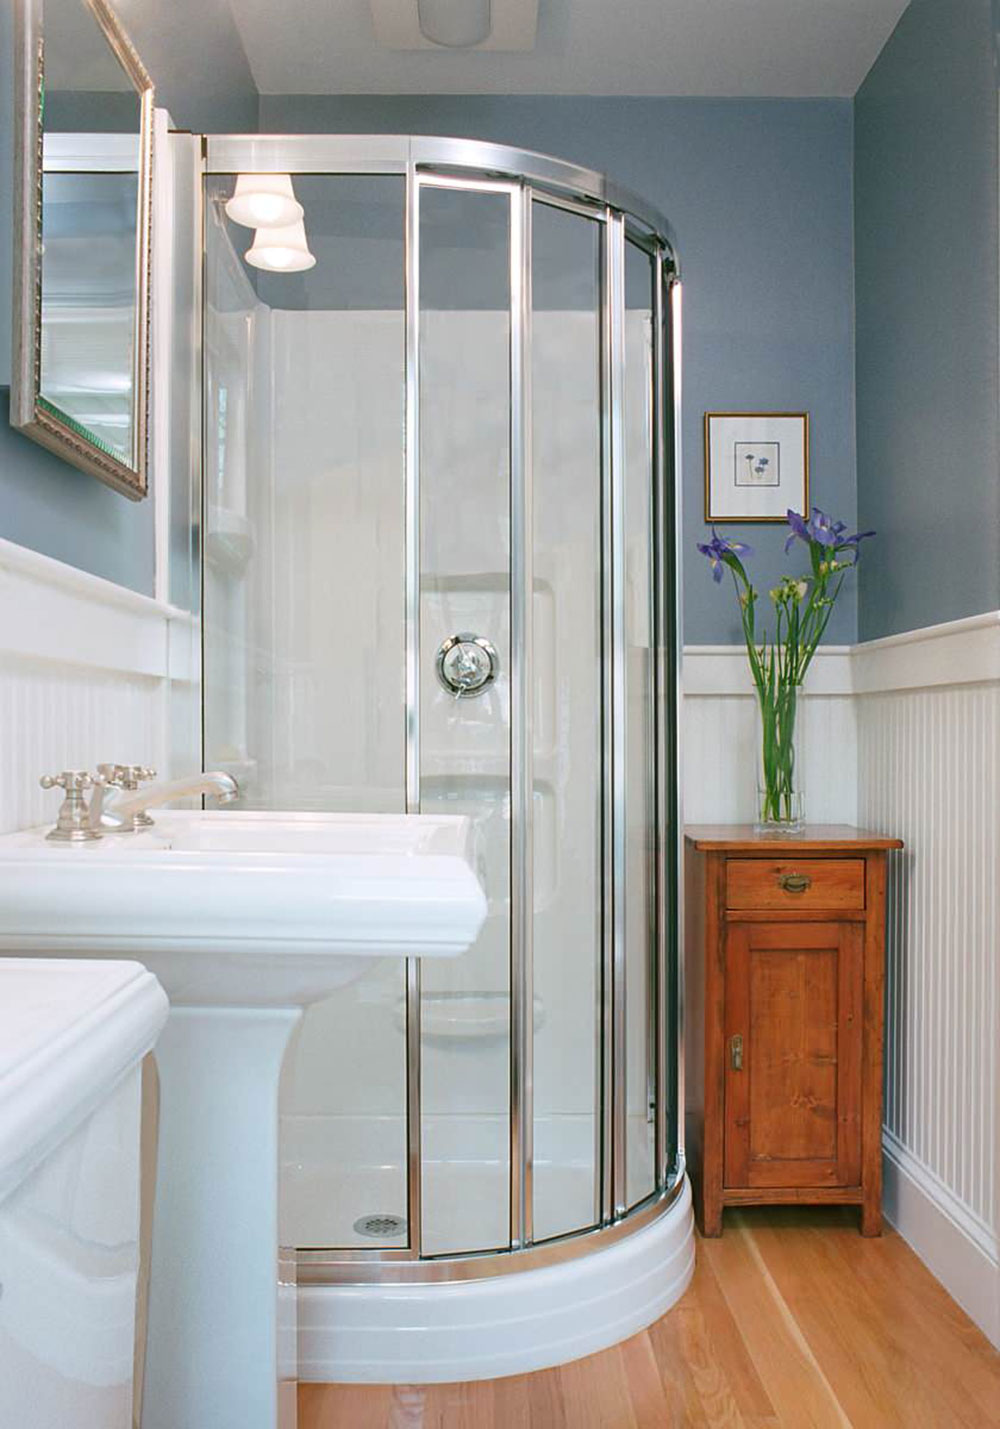 Merveilleux How To Make A Small Bathroom Look Bigger1 How